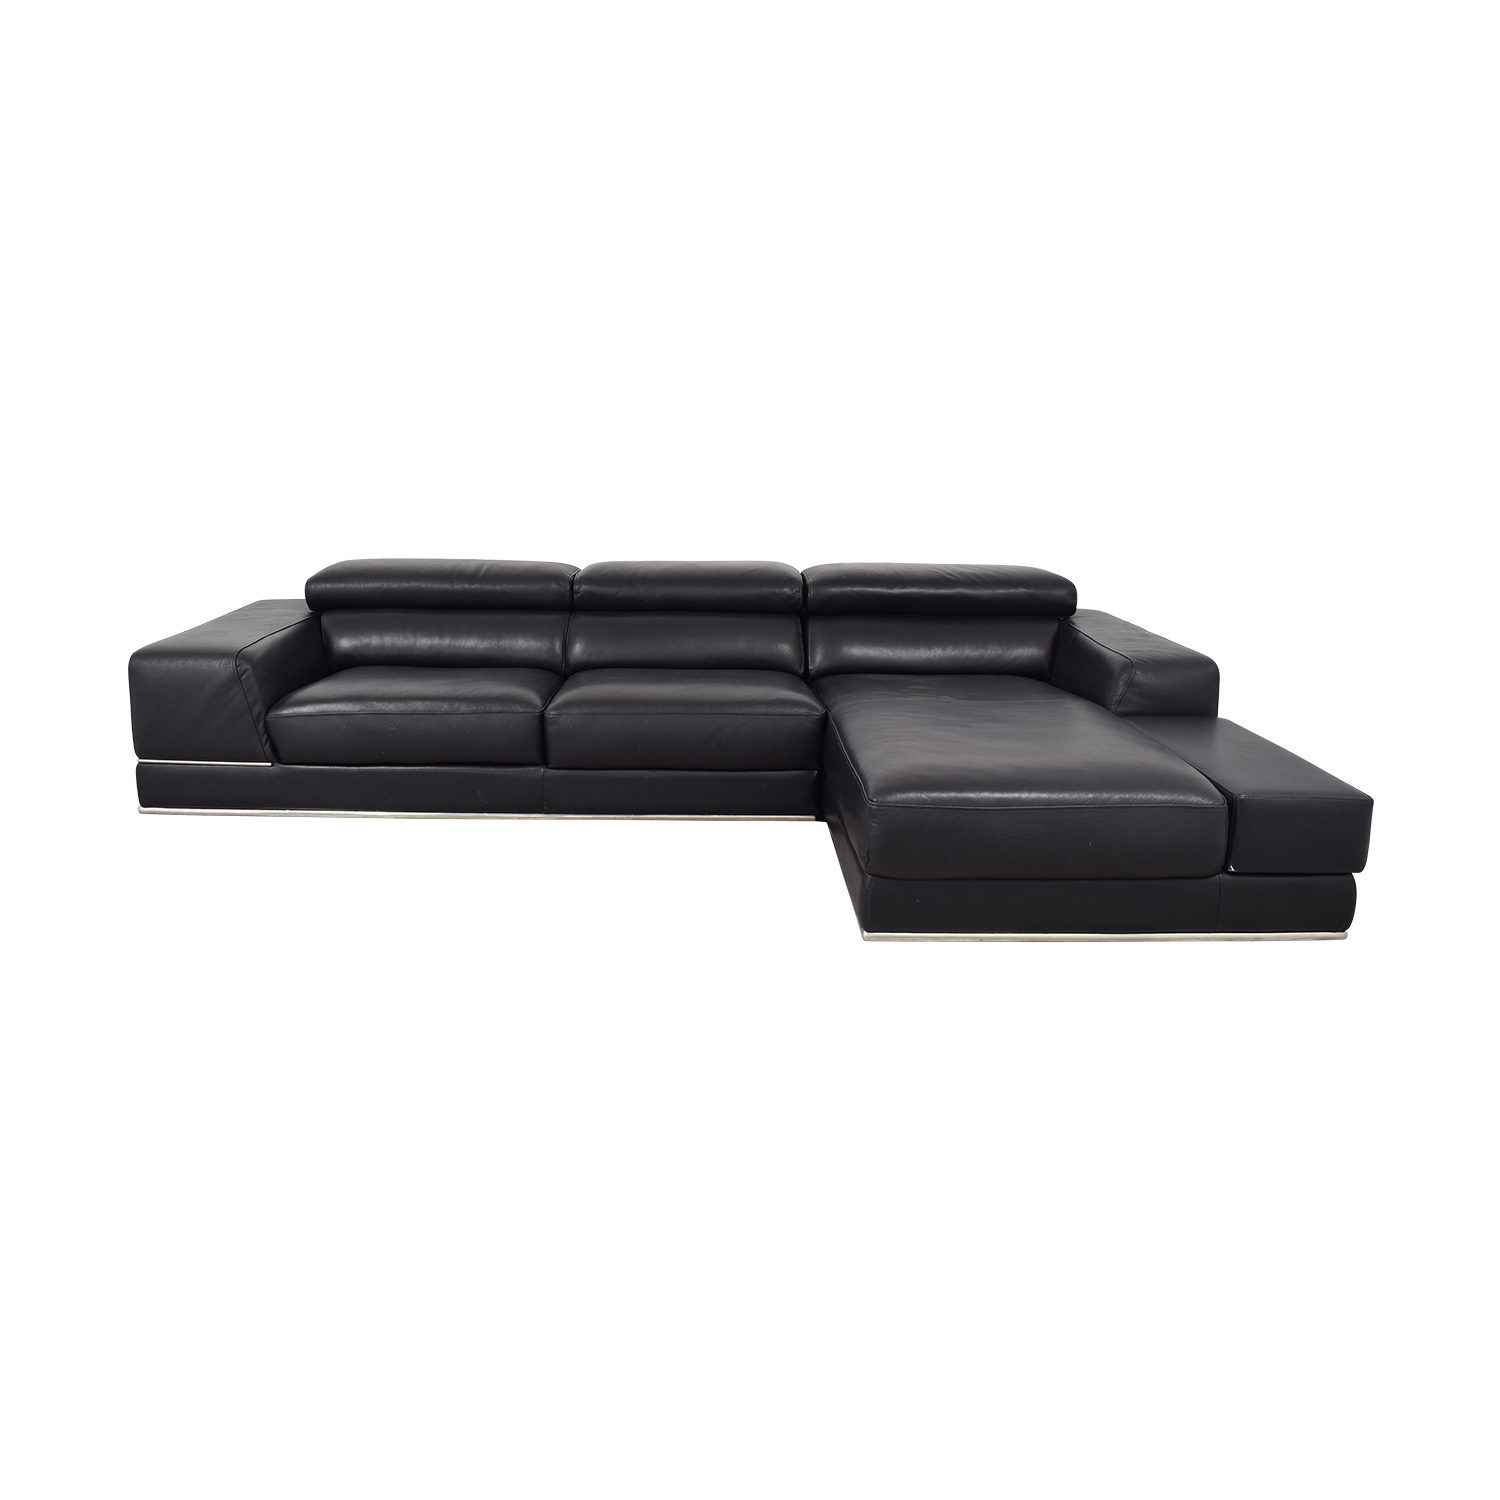 Miraculous 72 Off Modani Modani Bergamo Right Sectional Sofa Sofas Uwap Interior Chair Design Uwaporg